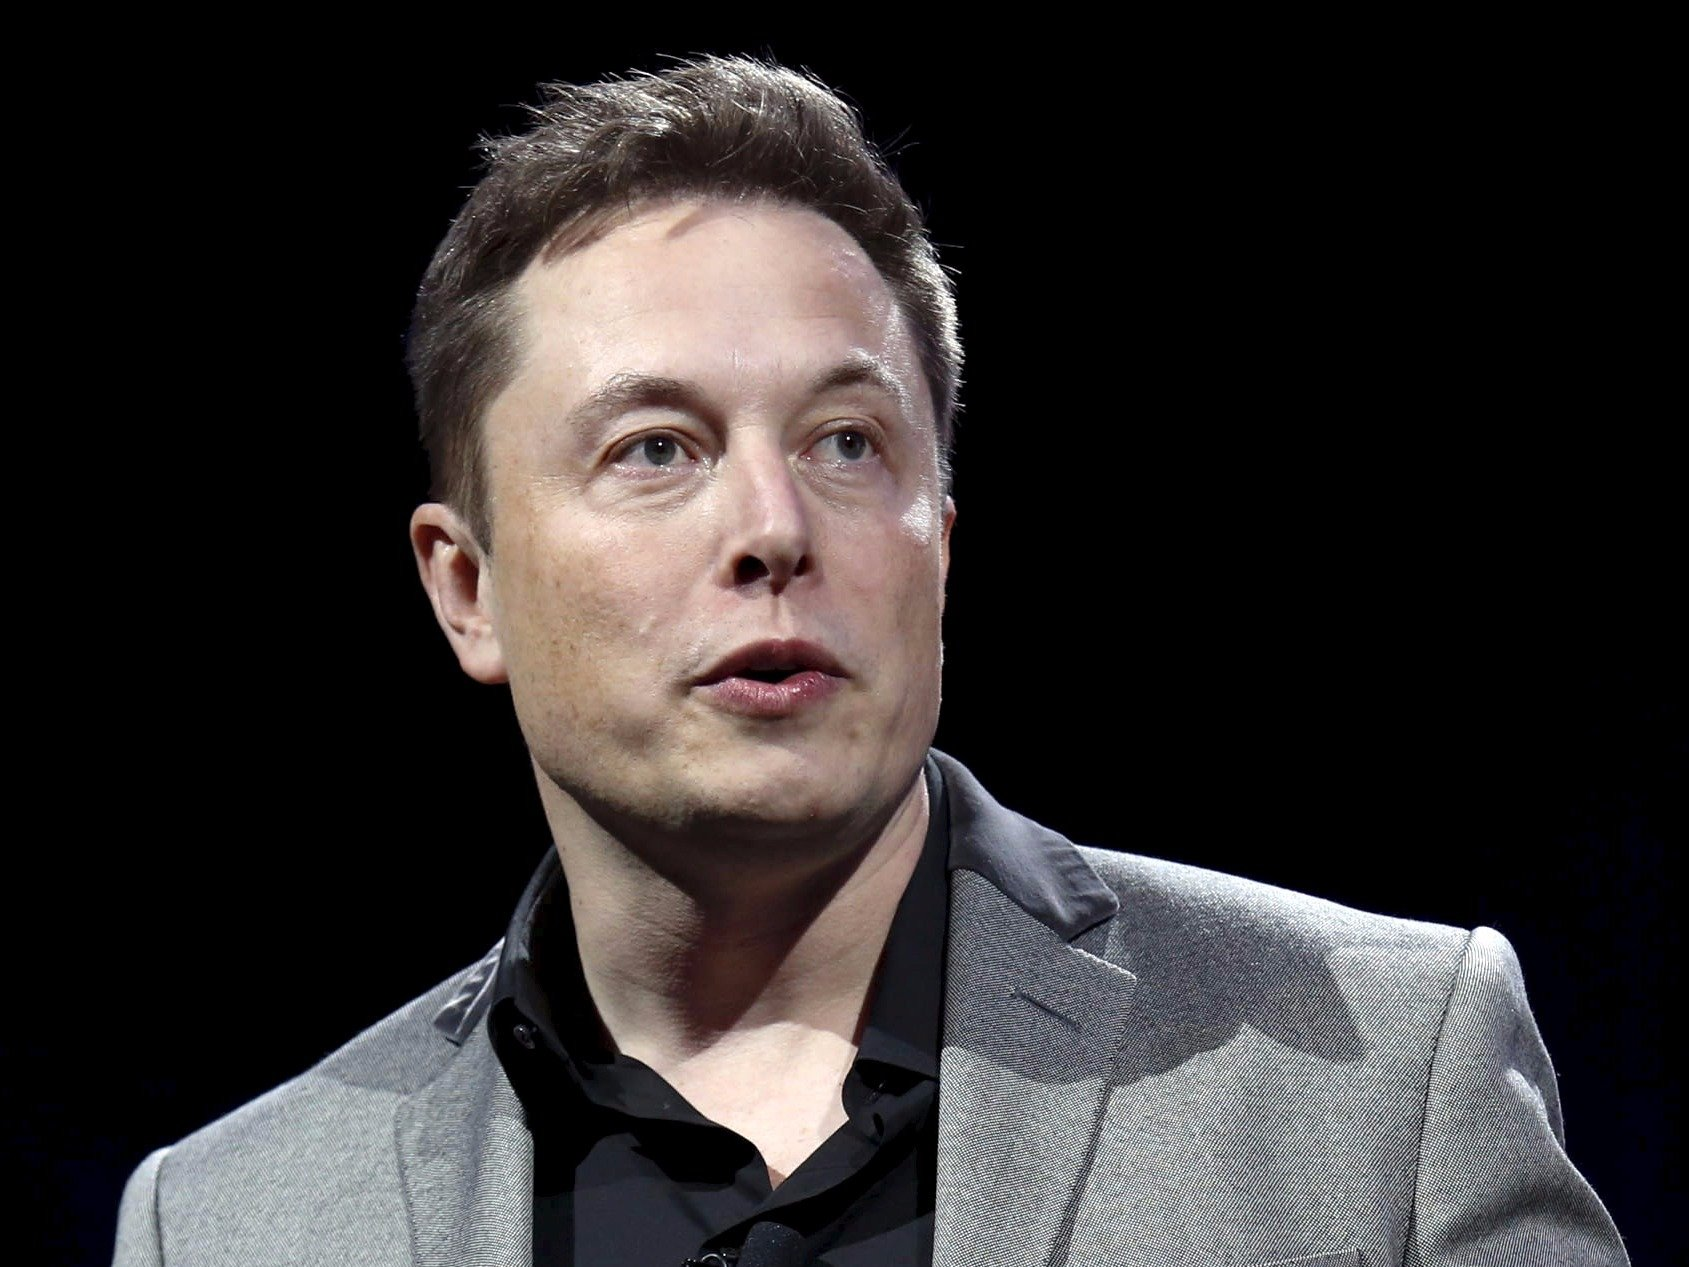 Elon Musk wants to build robots that do chores